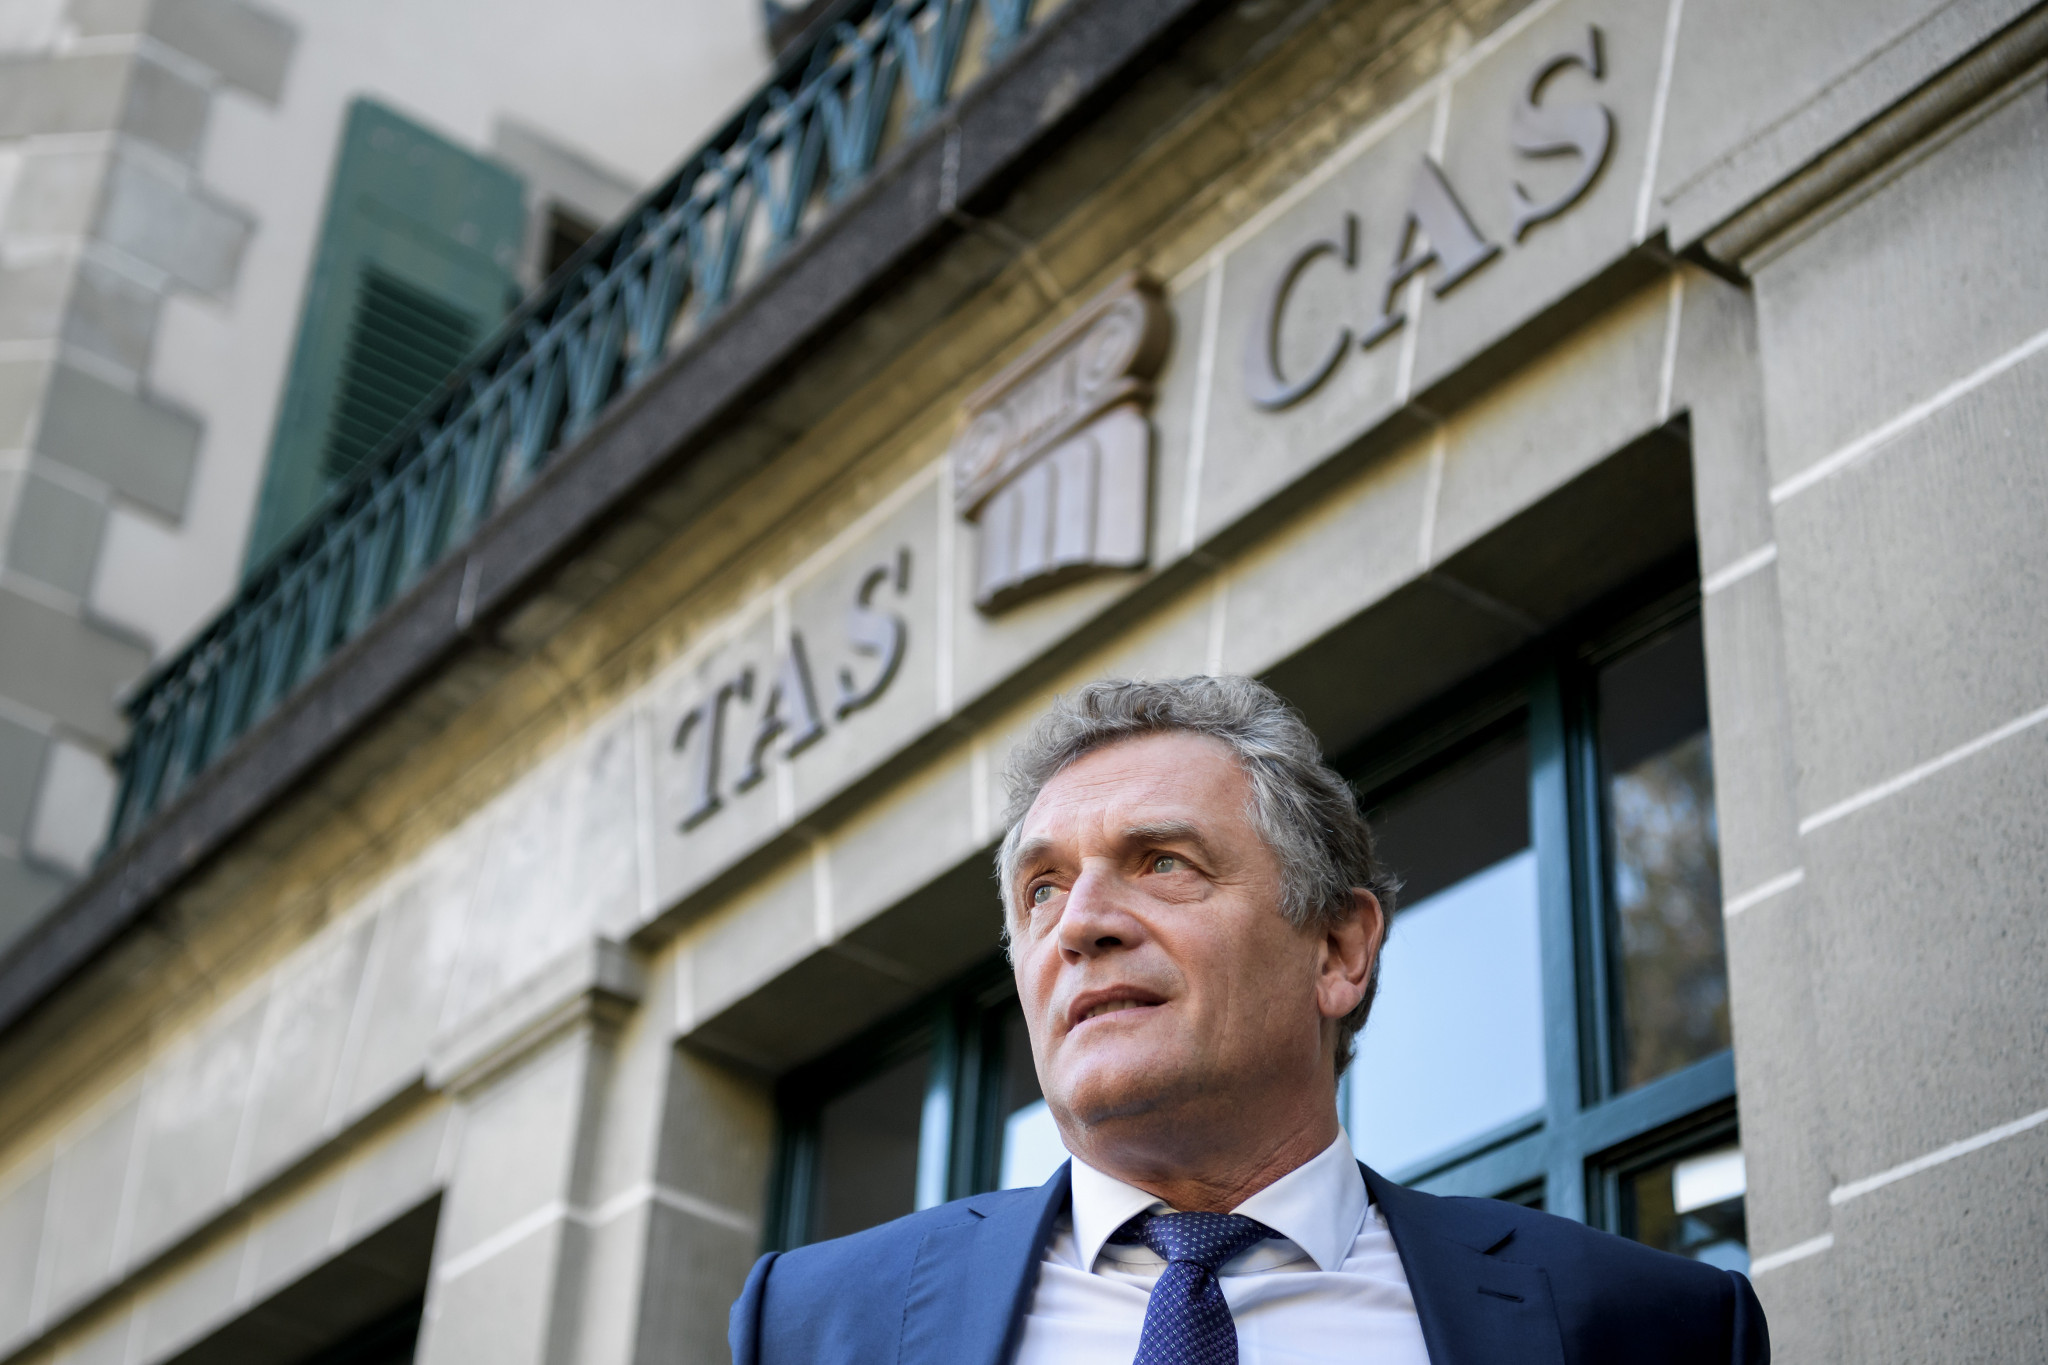 Jérôme Valcke failed with an appeal against his 10-year ban at the CAS earlier this year ©Getty Images